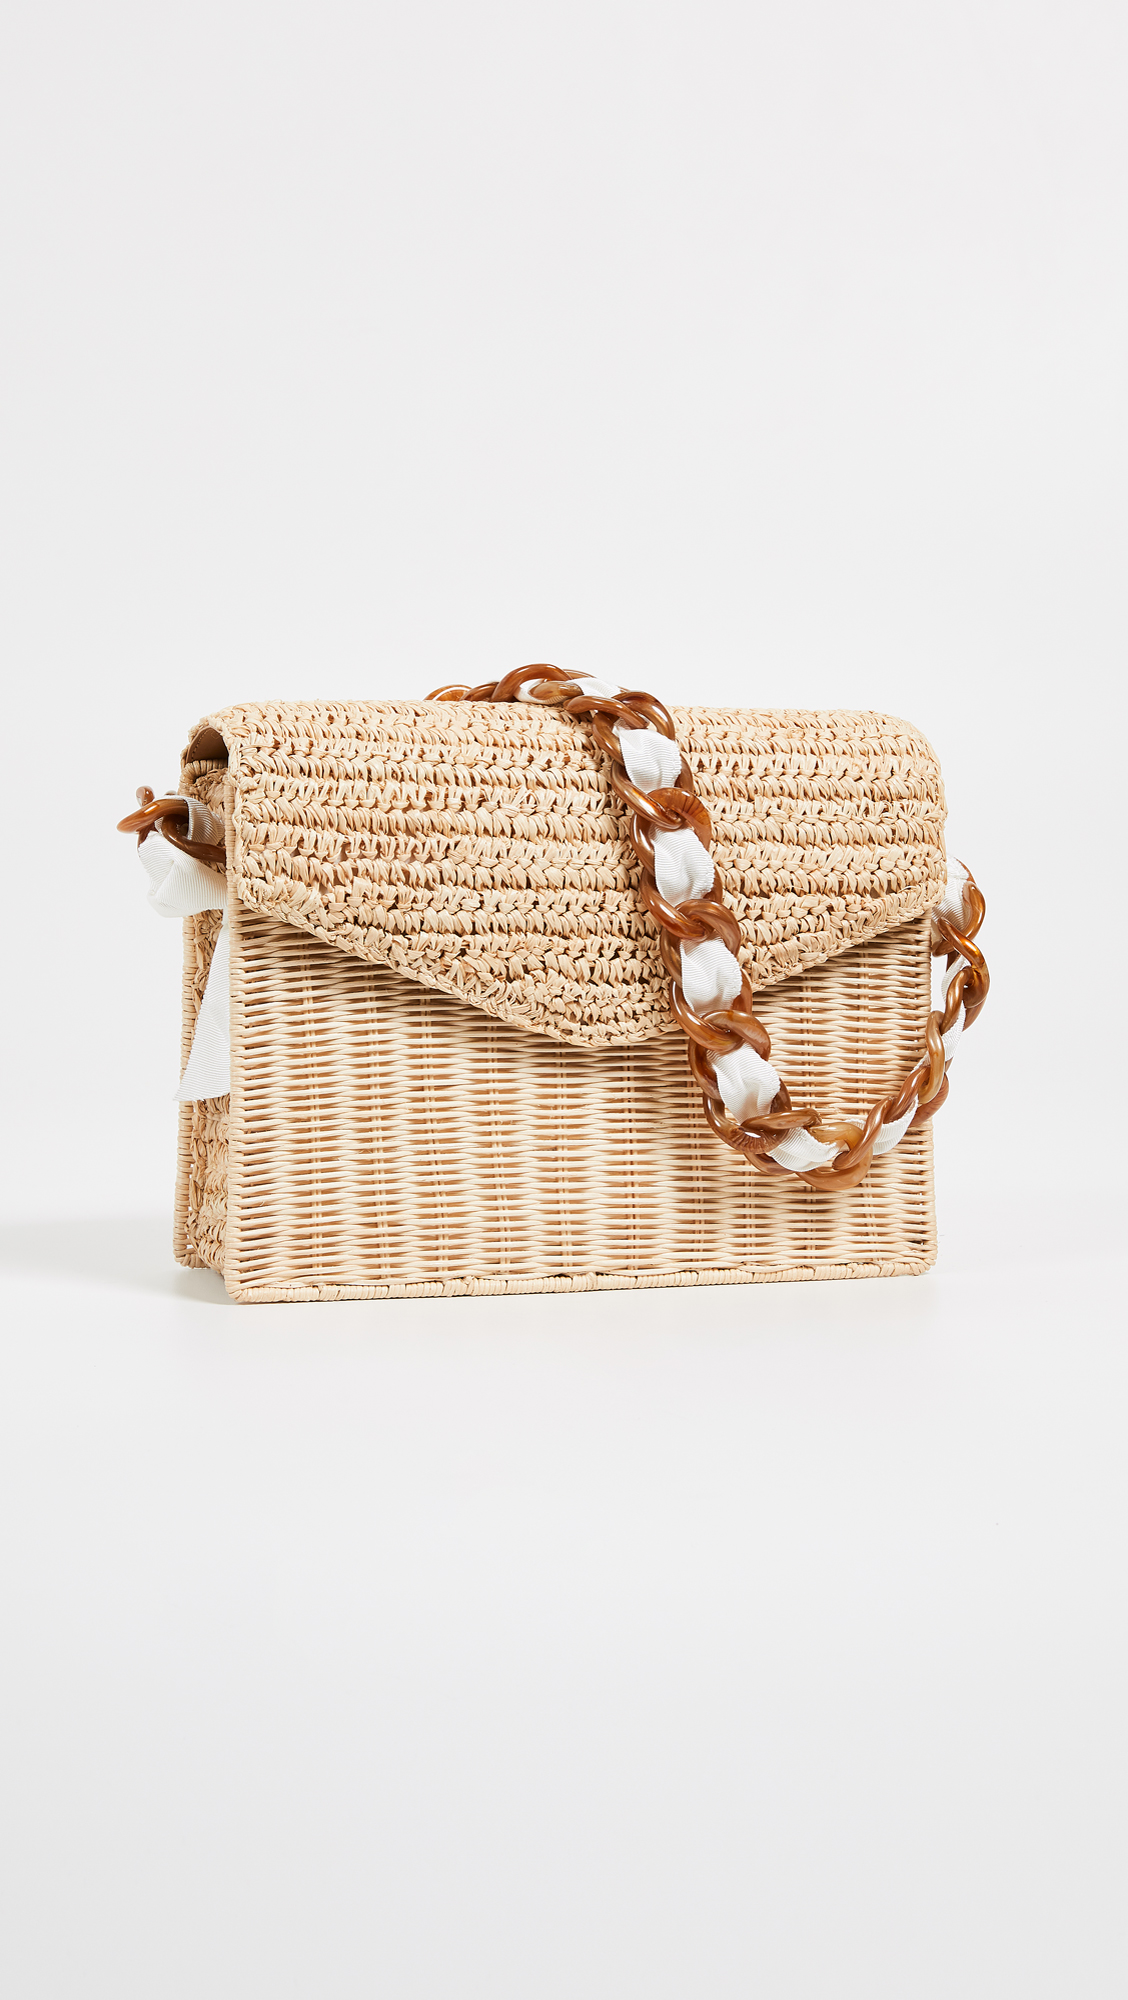 Leather and Straw Mixed Media Shoulder Bag